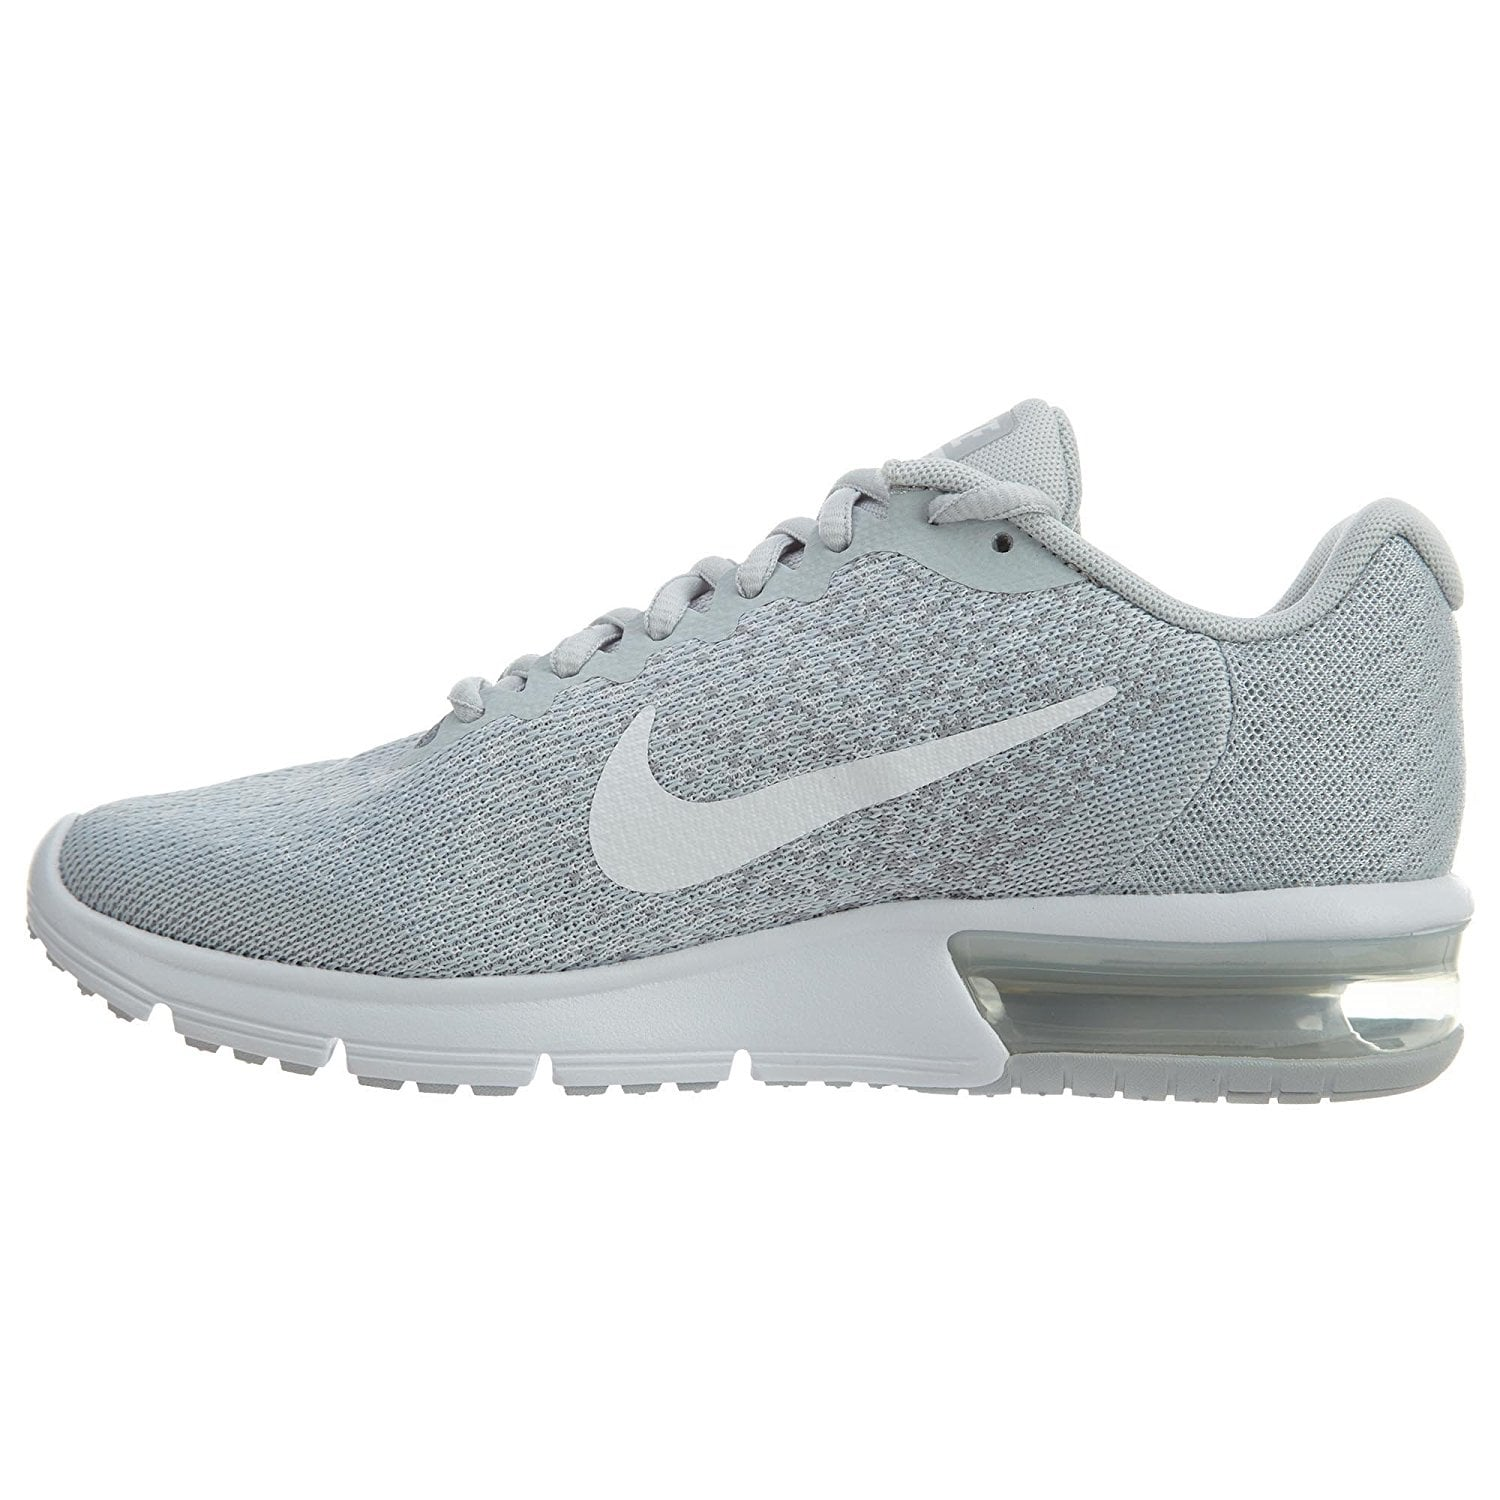 303b25e32a9343 Shop Nike Air Max Sequent 2 Pure Platinum White Wolf Grey Women s Running  Shoes - Free Shipping Today - Overstock - 17950061